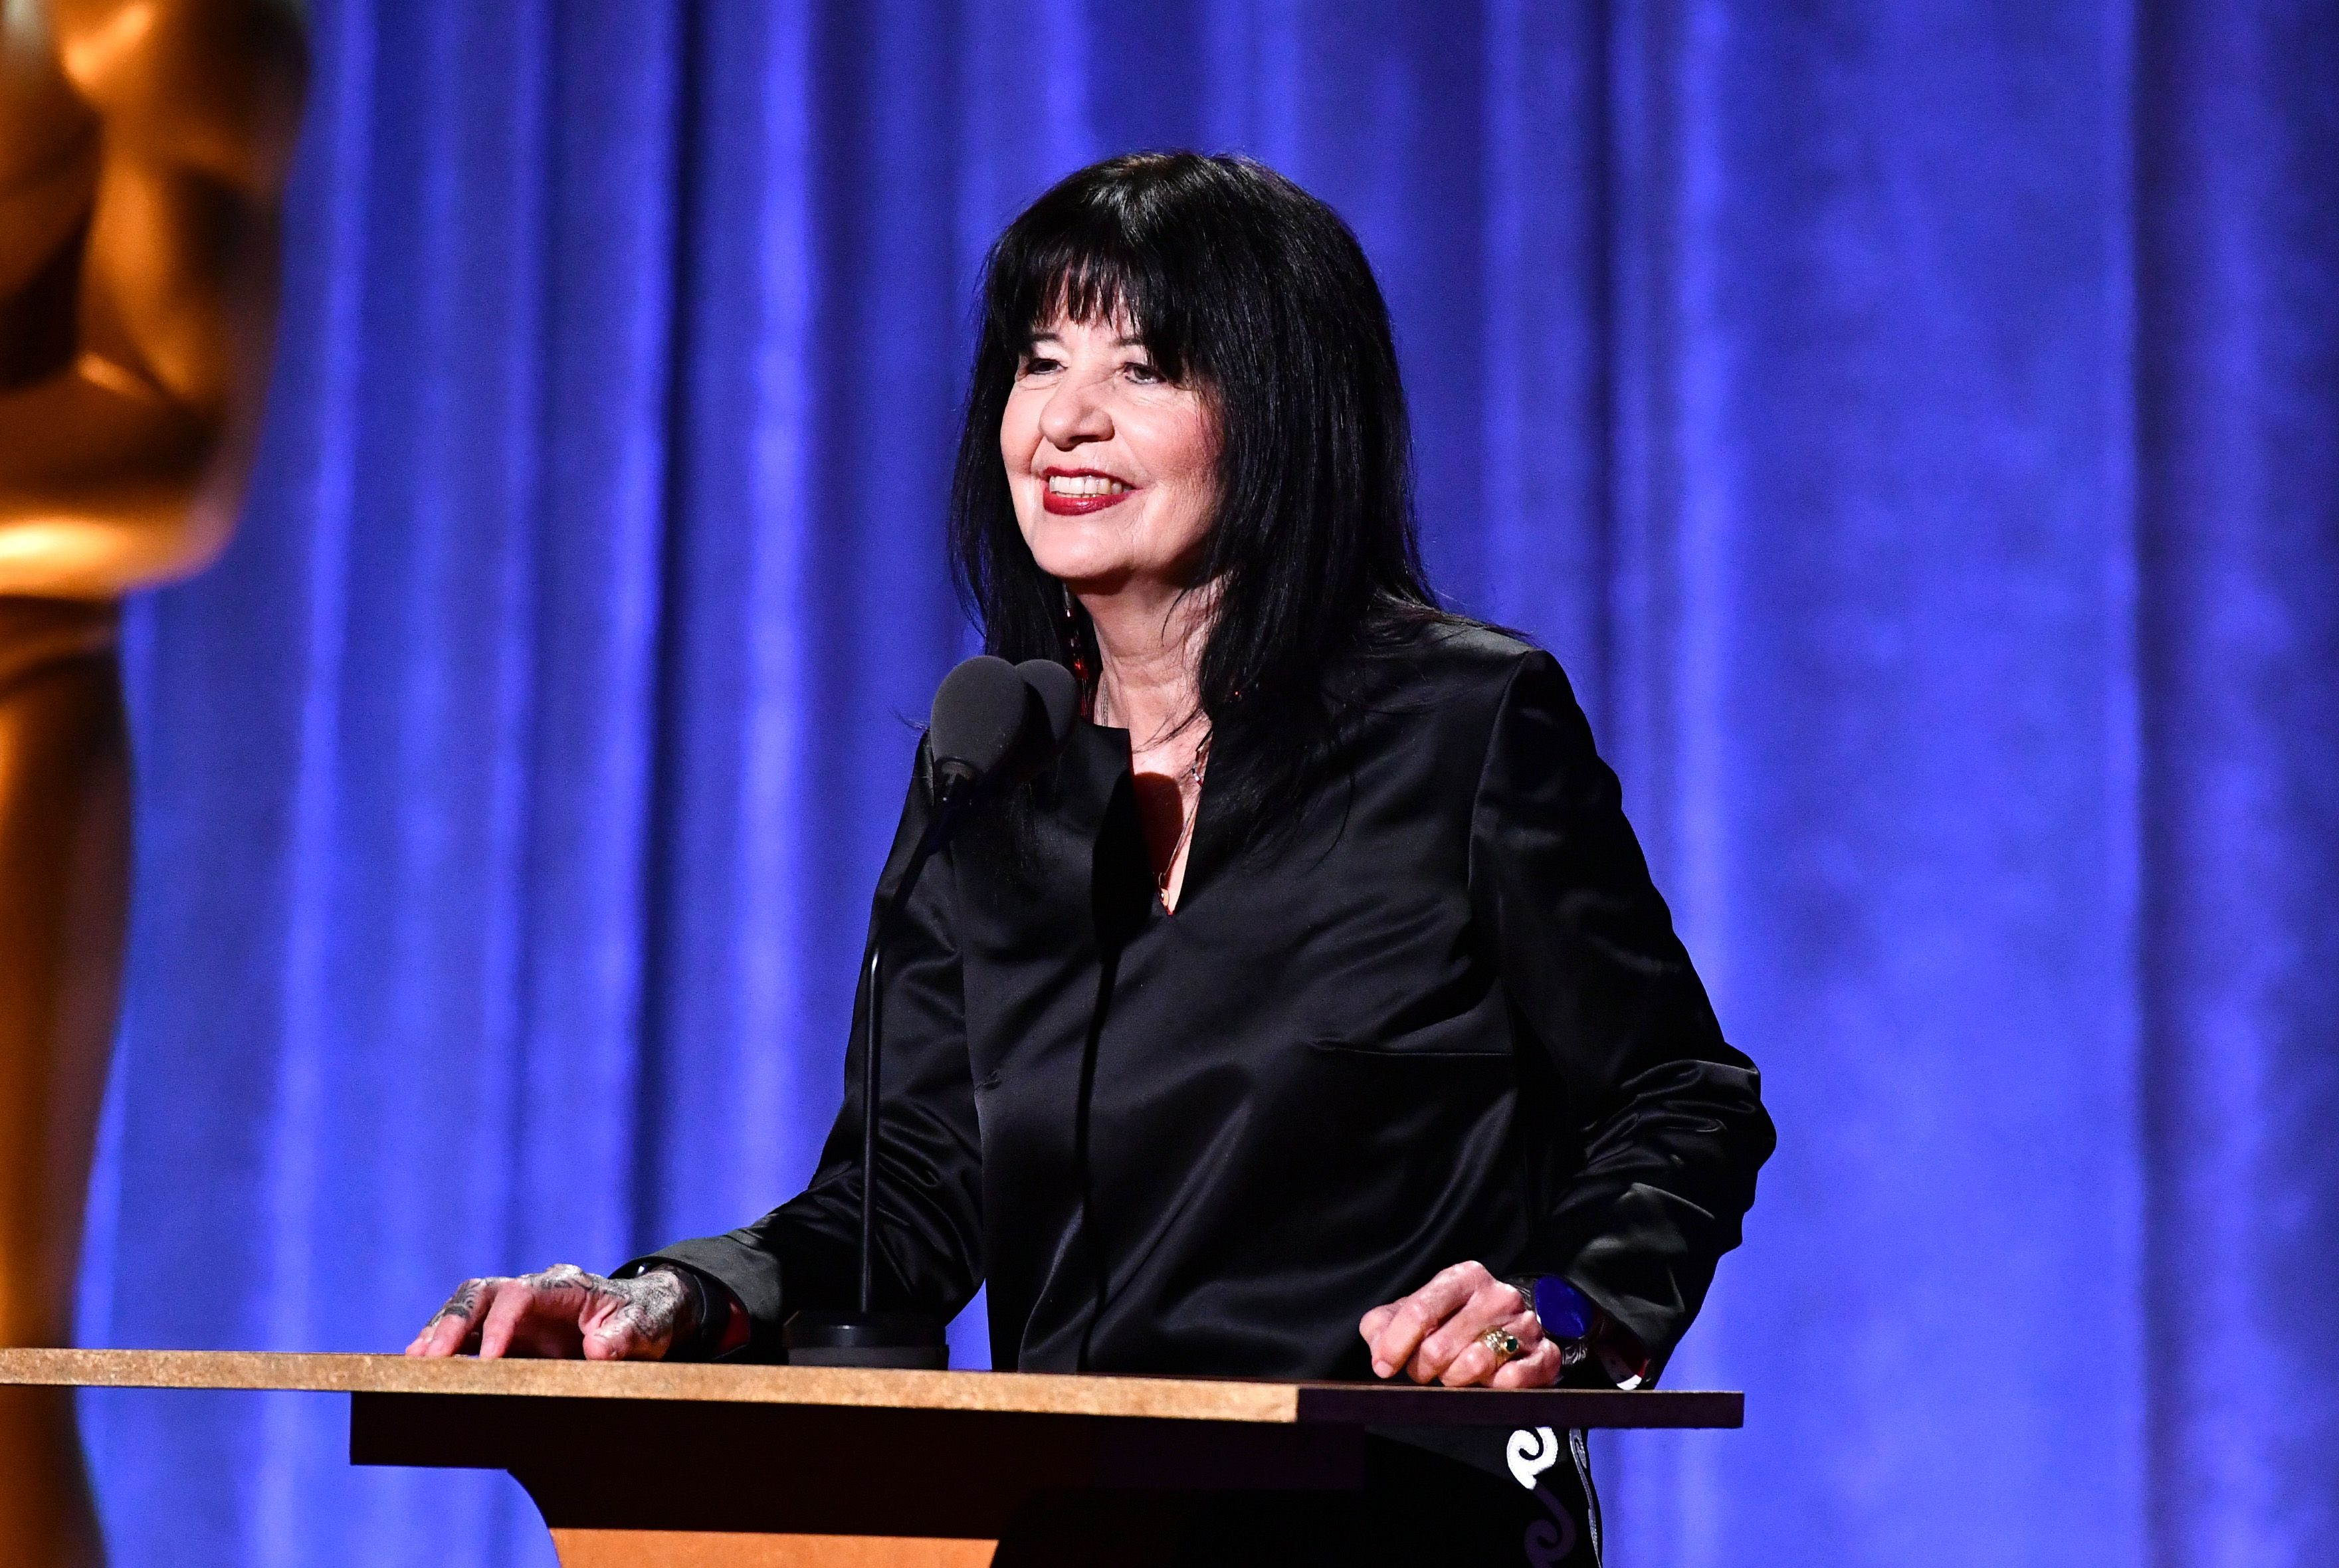 Mandatory Credit: Photo by Michael Buckner/Variety/Shutterstock (10456677ay) Joy Harjo Governors Awards, Inside, Dolby Theatre, Los Angeles, USA - 27 Oct 2019